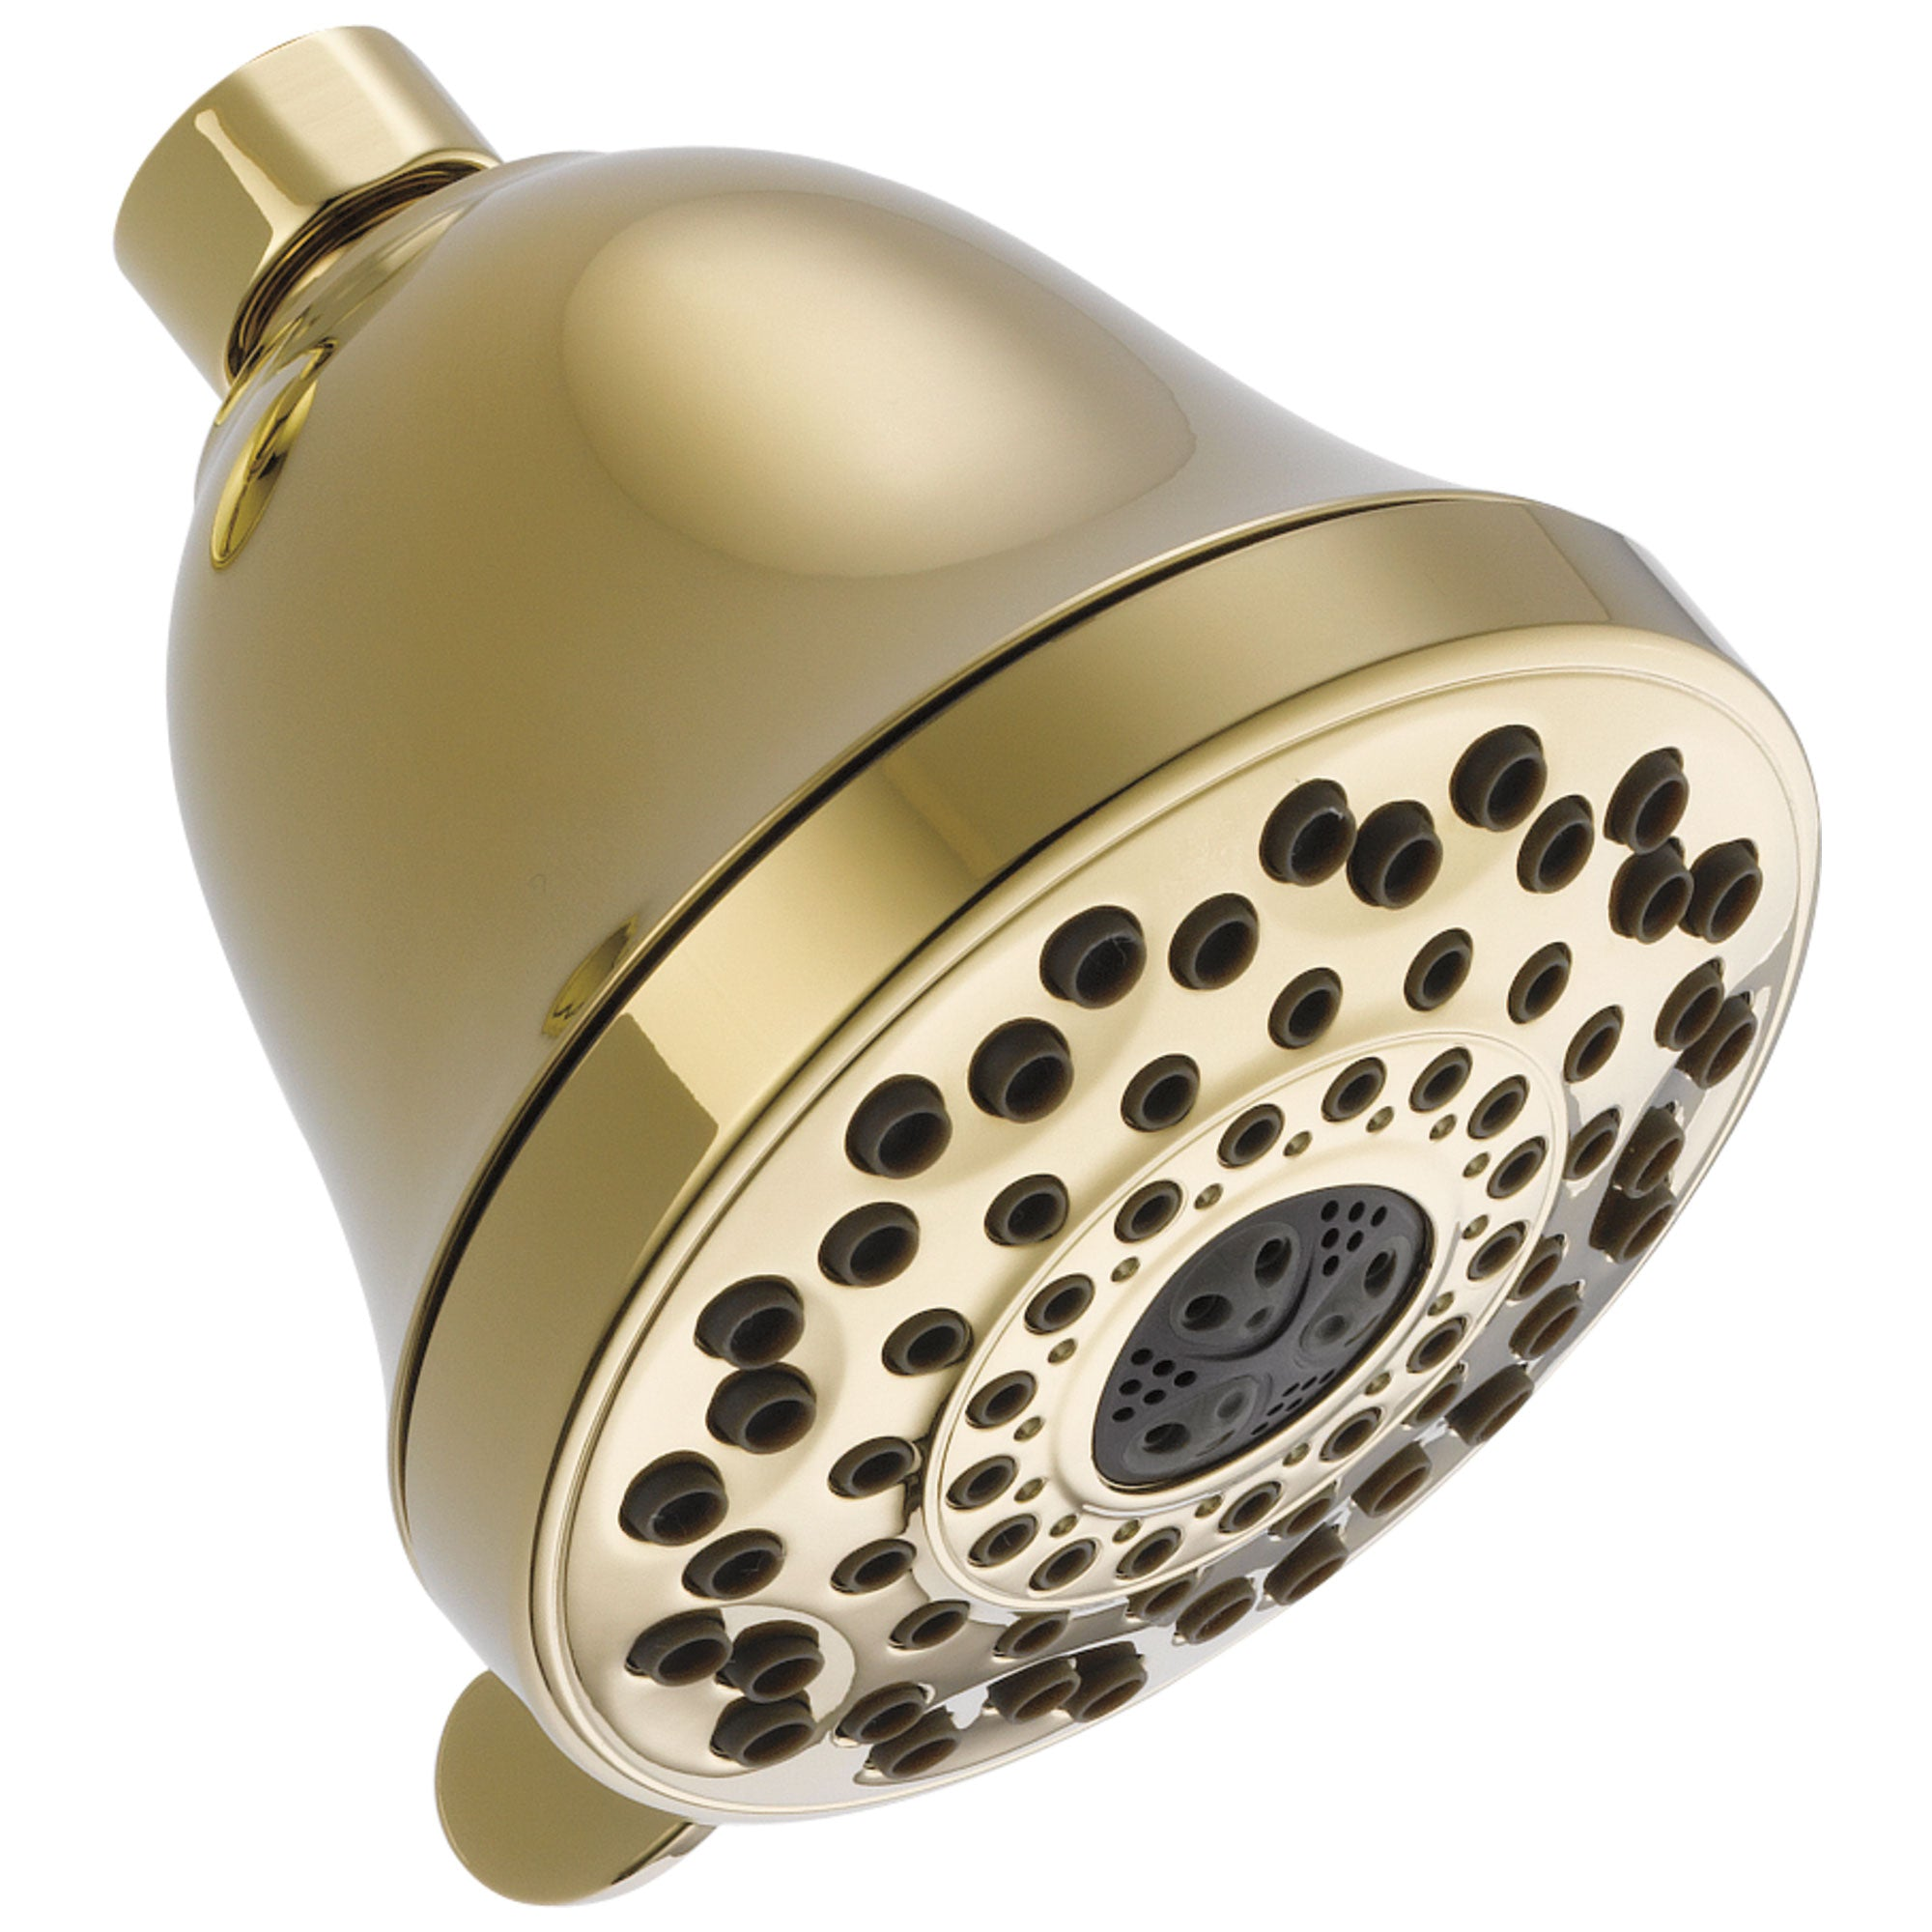 Delta Universal Showering Components Collection Polished Brass Finish 7-Setting Shower Head D52626PBPK